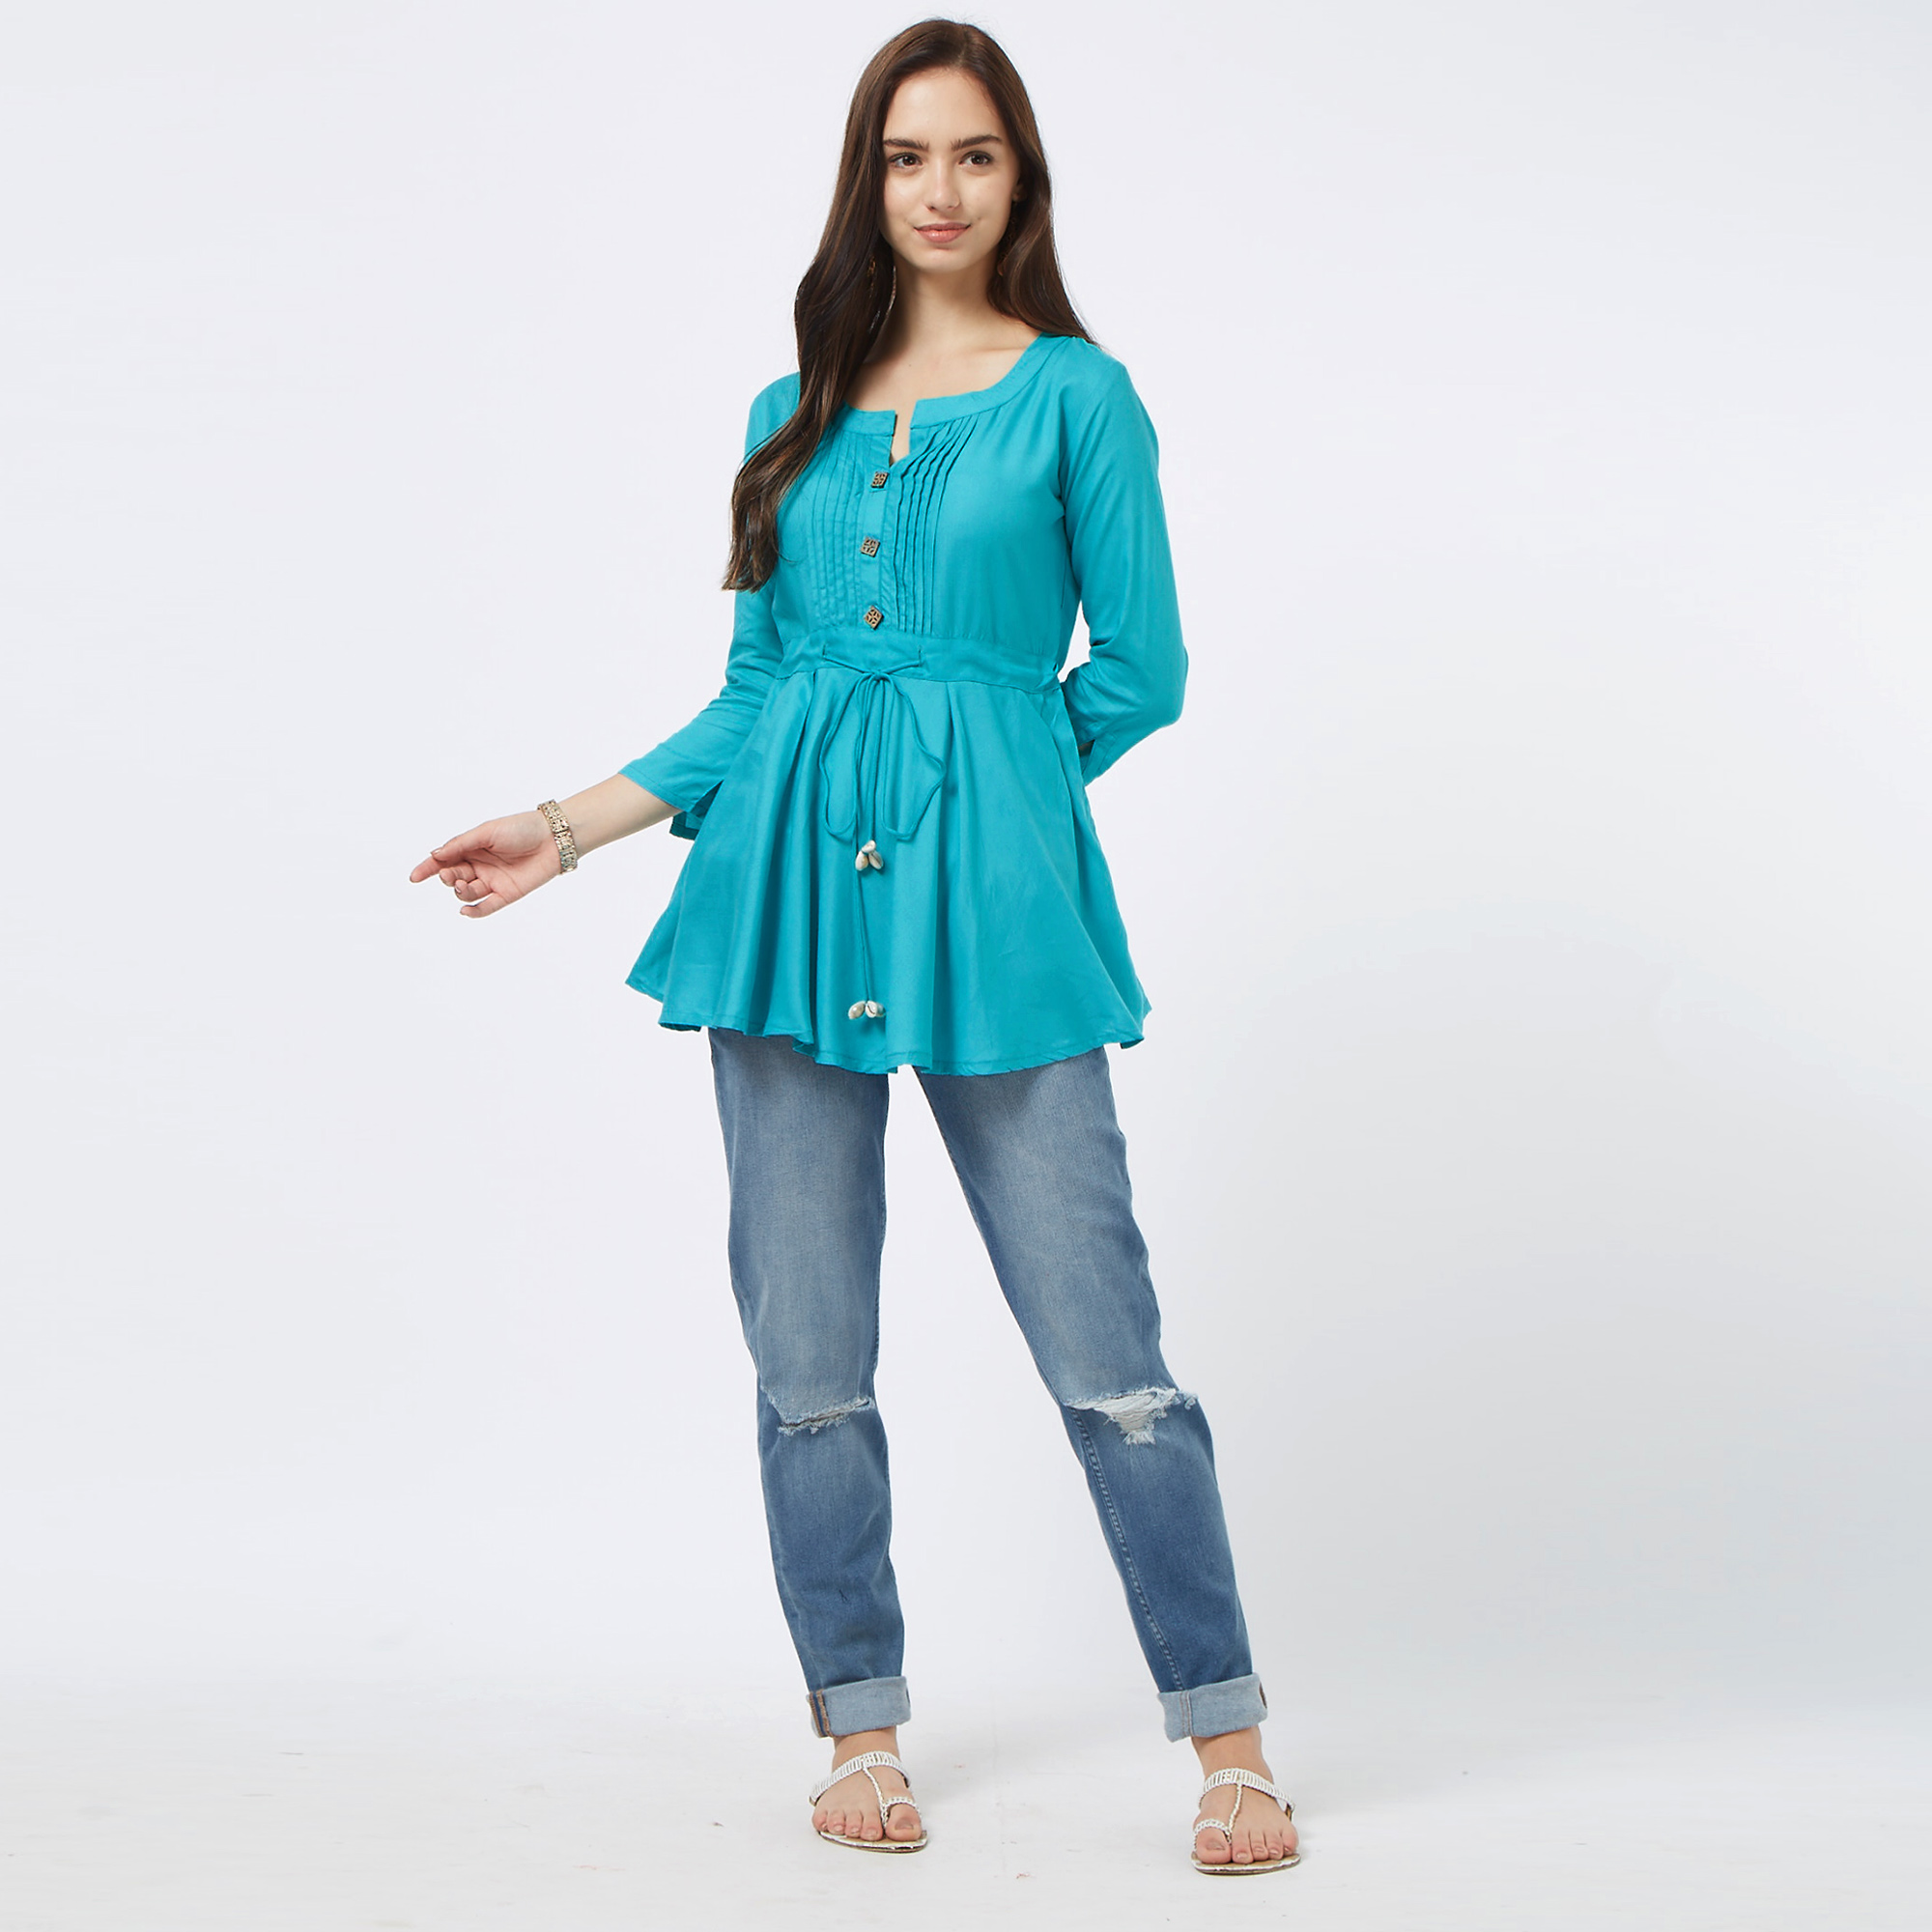 Elegant Aqua Blue Colored Casual Cotton Top